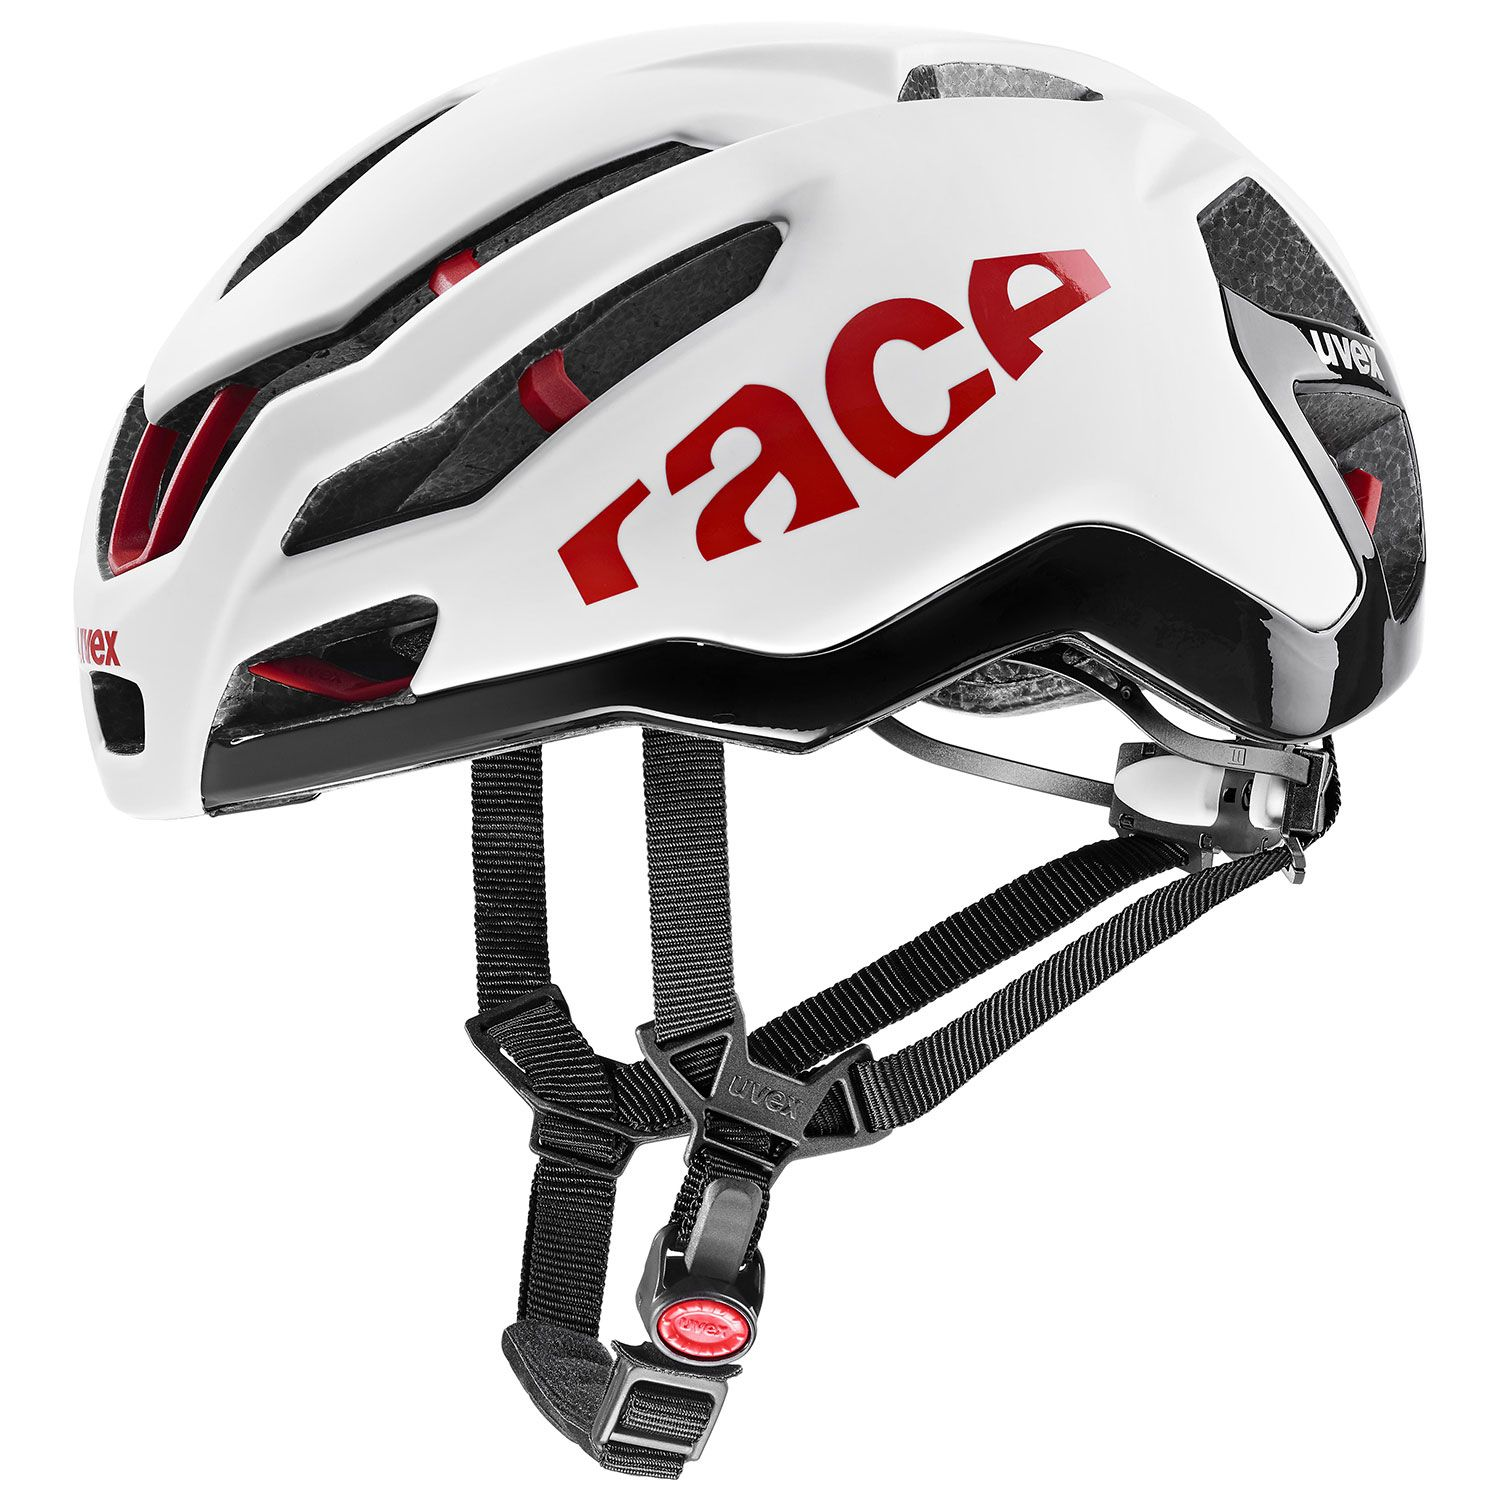 2021 UVEX HELMA RACE 9, WHITE - RED 53-57